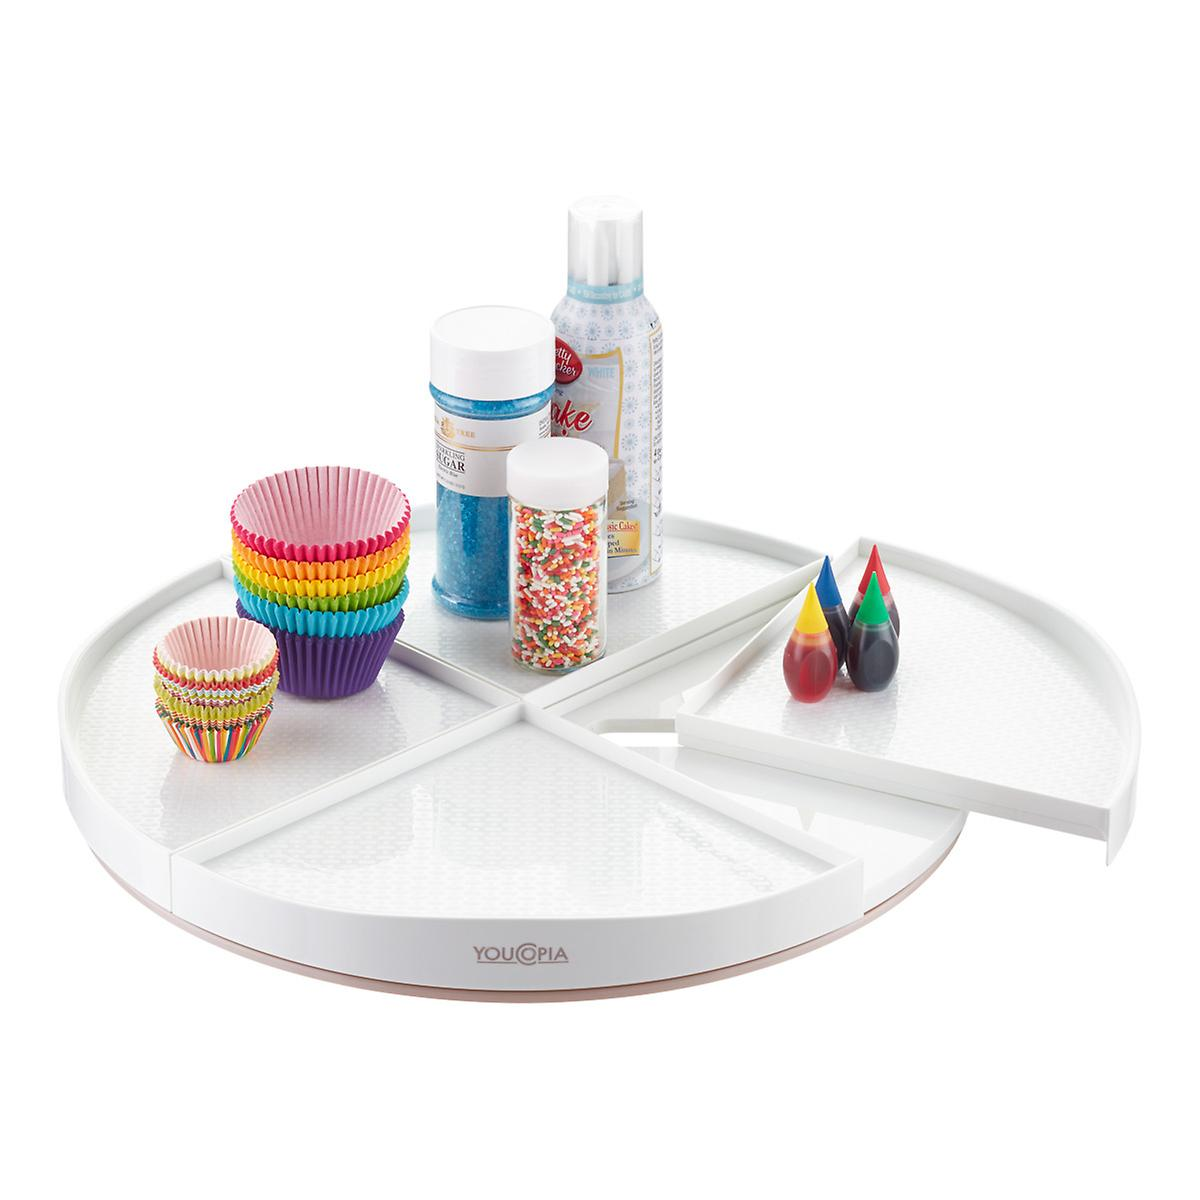 Youcopia White Crazy Susan Lazy Susan The Container Store